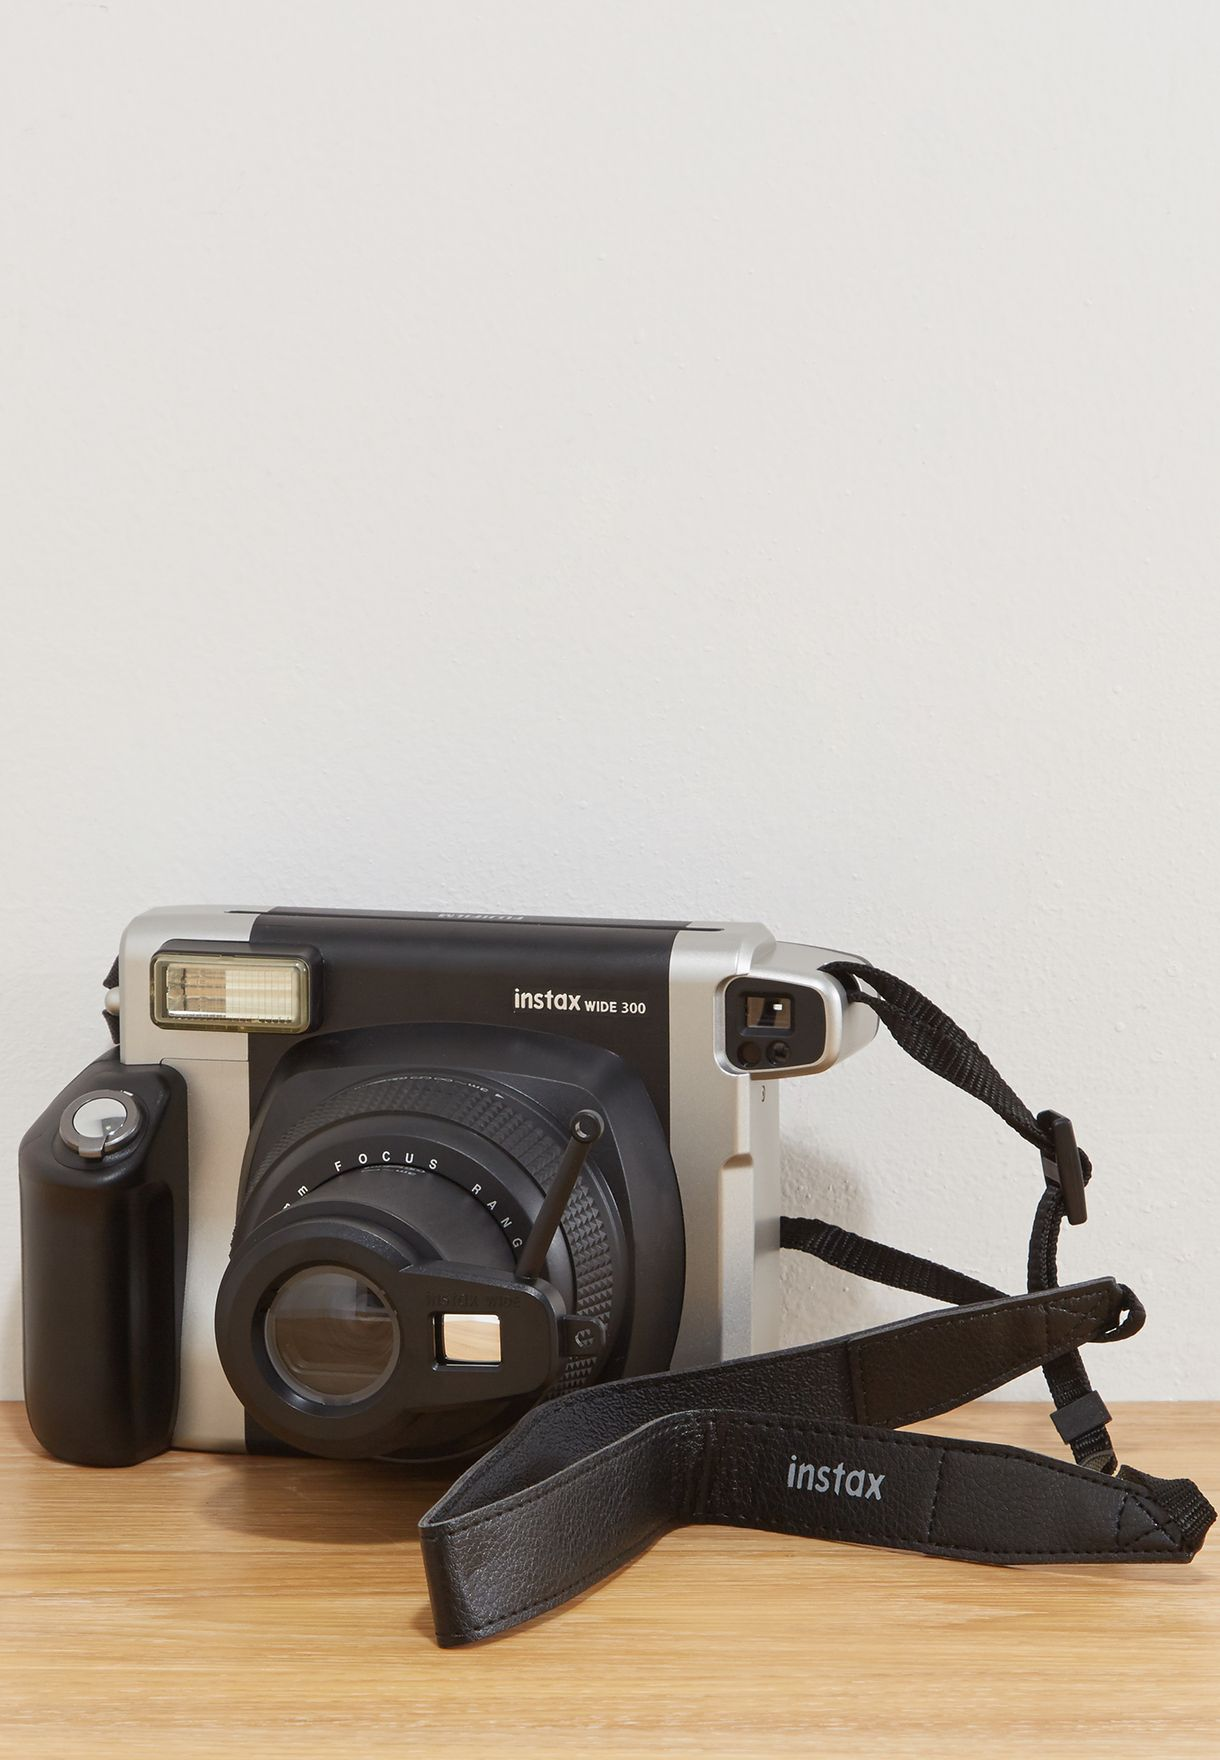 300 Instax Wide Camera + Instax Wide Film